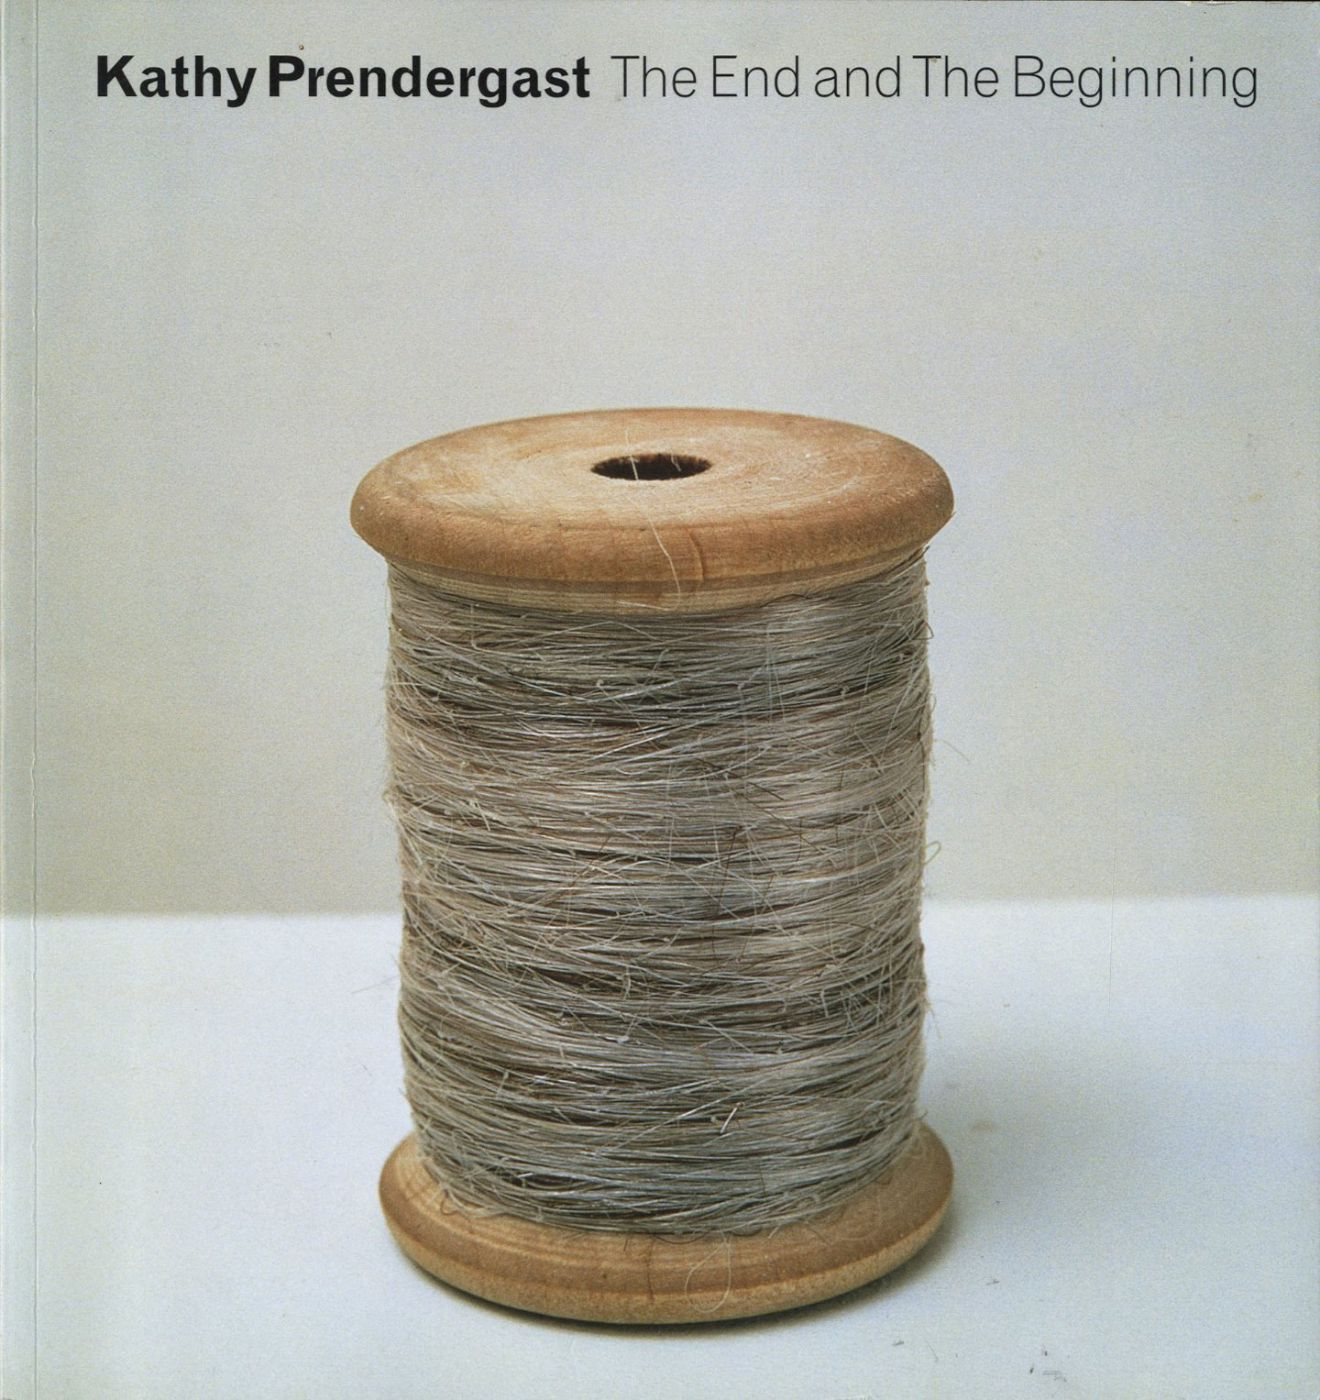 Kathy Prendergast: The End and The Beginning